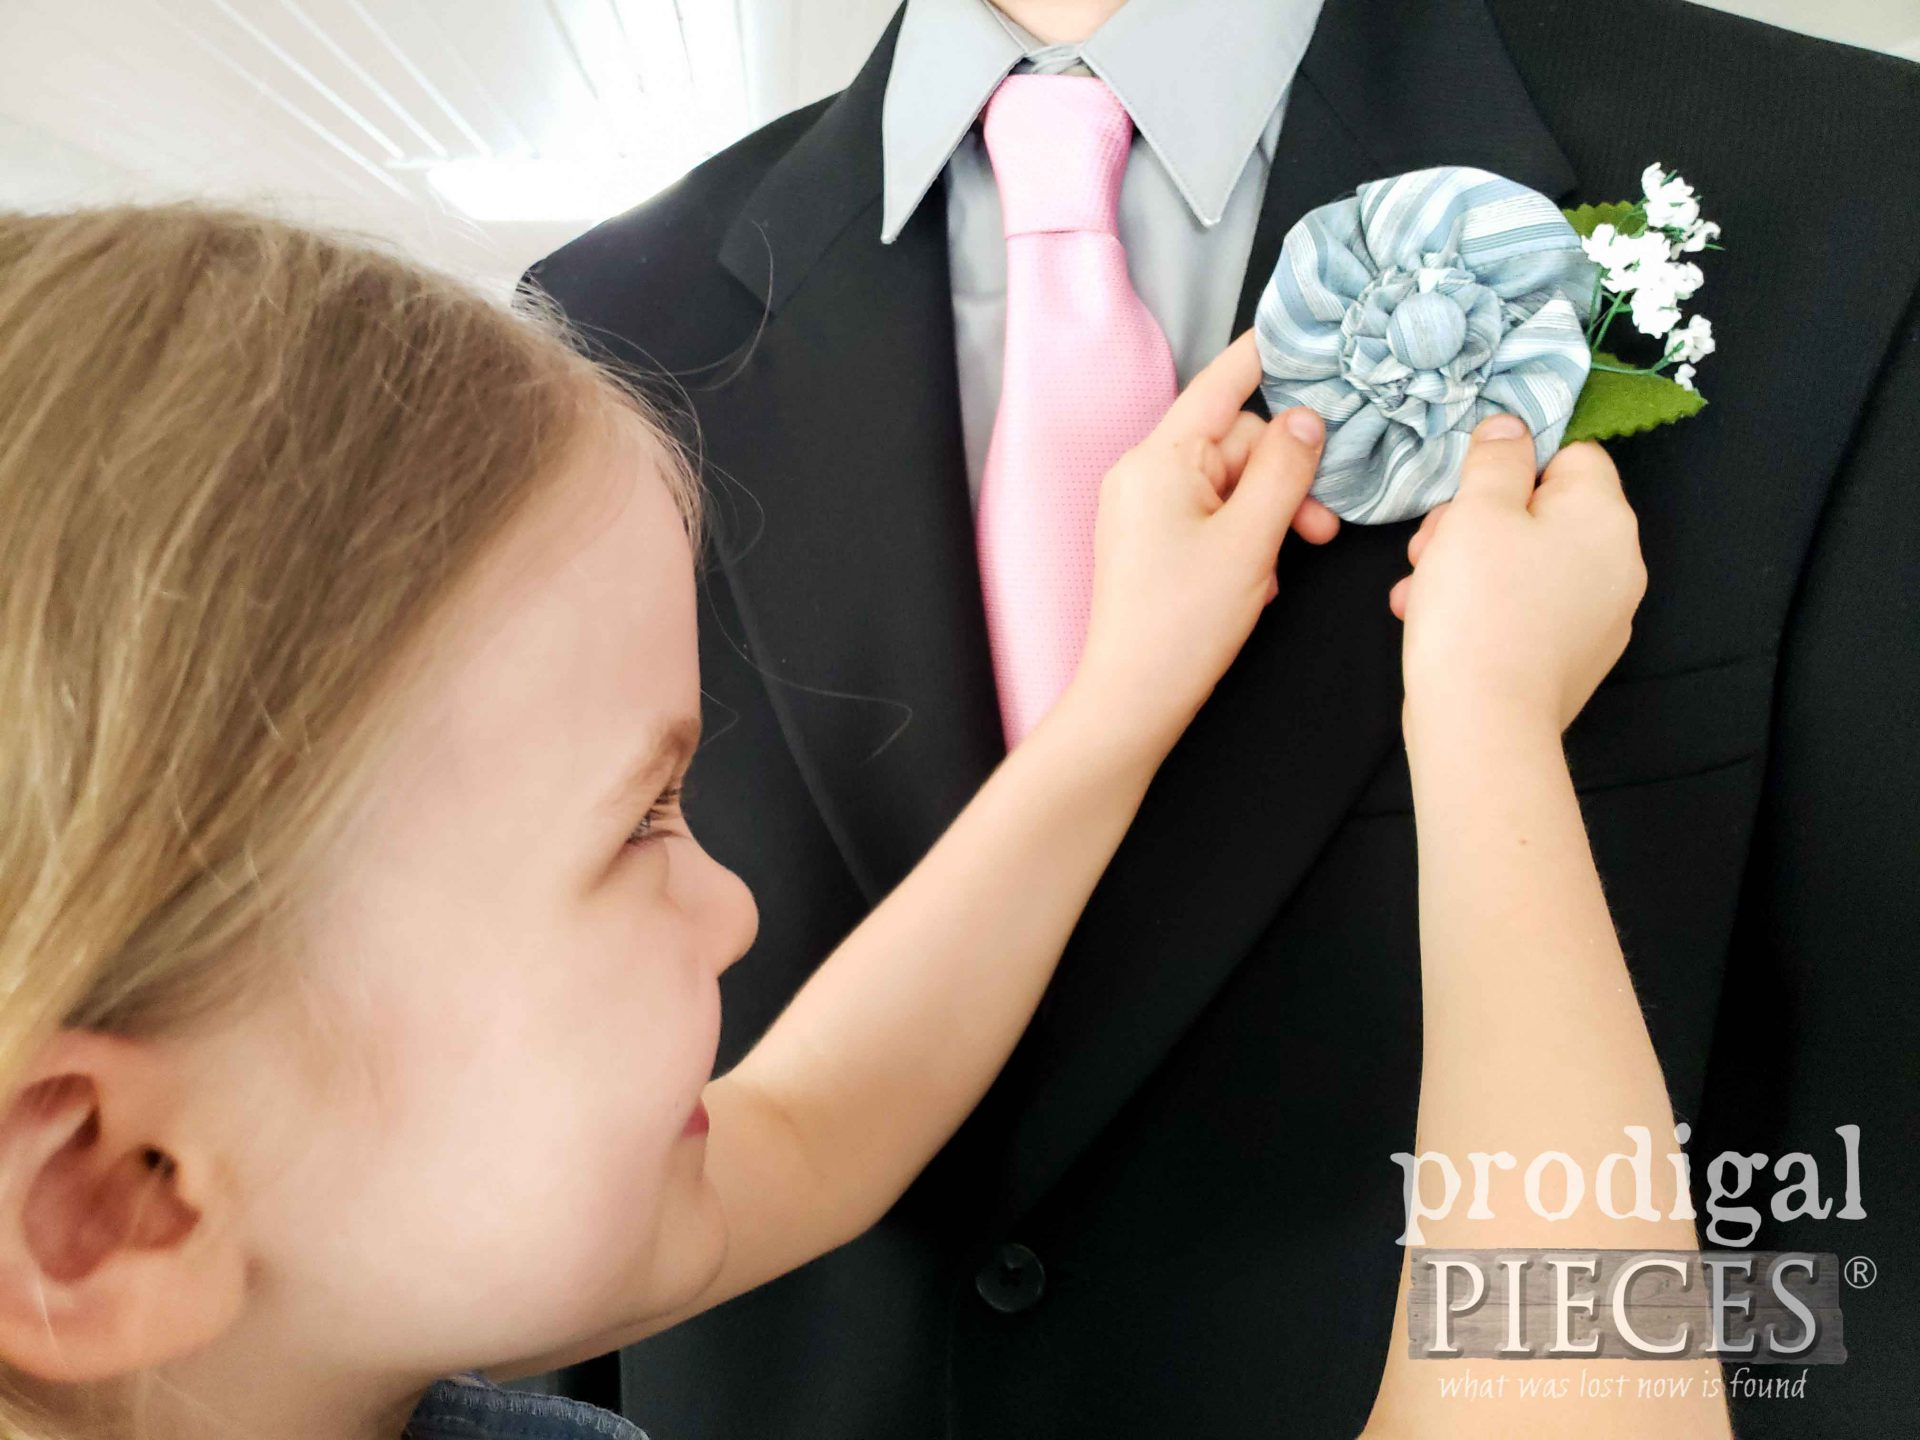 DIY Father's Day Boutonniere from Upcycled Necktie with Video Tutorial by Larissa of Prodigal Pieces | prodigalpieces.com #prodigalpieces #diy #handmade #fathersday